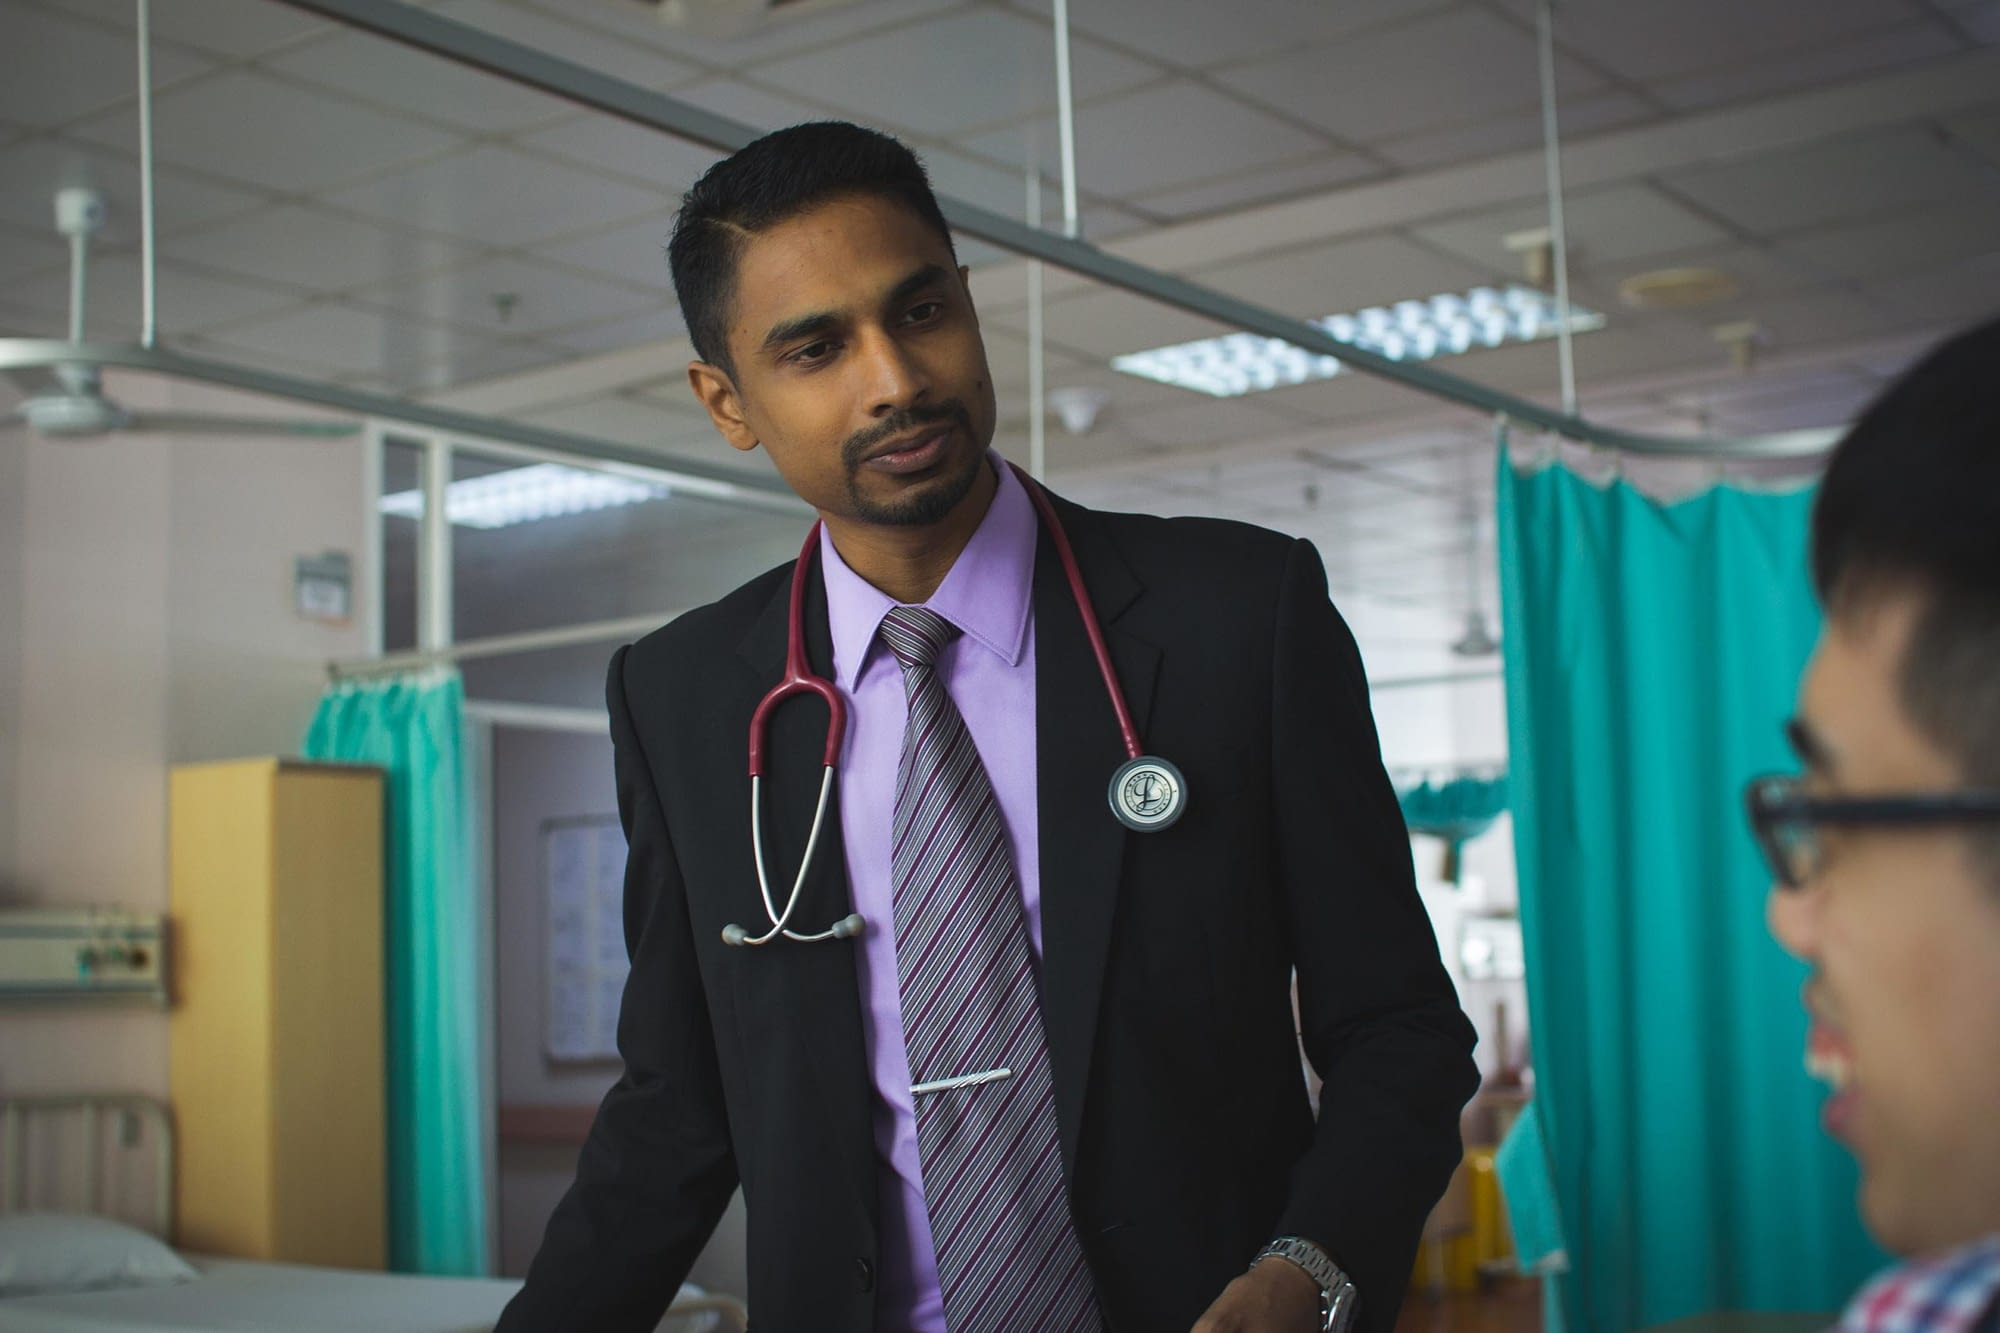 Malaysian doctor talking with a man in a hospital